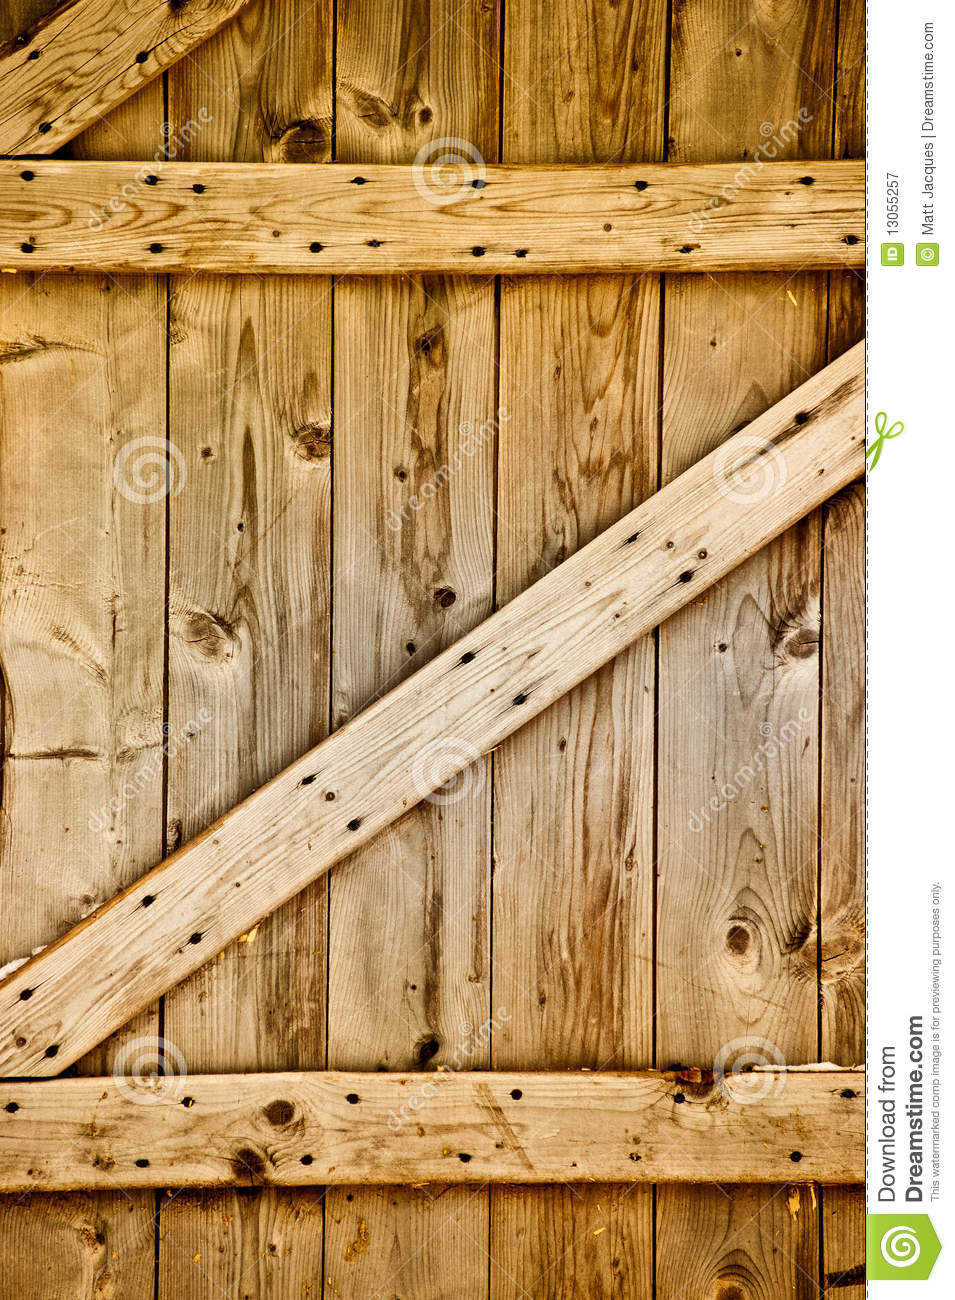 Wooden Rustic Barn Door Detail. Royalty Free Stock Photography.